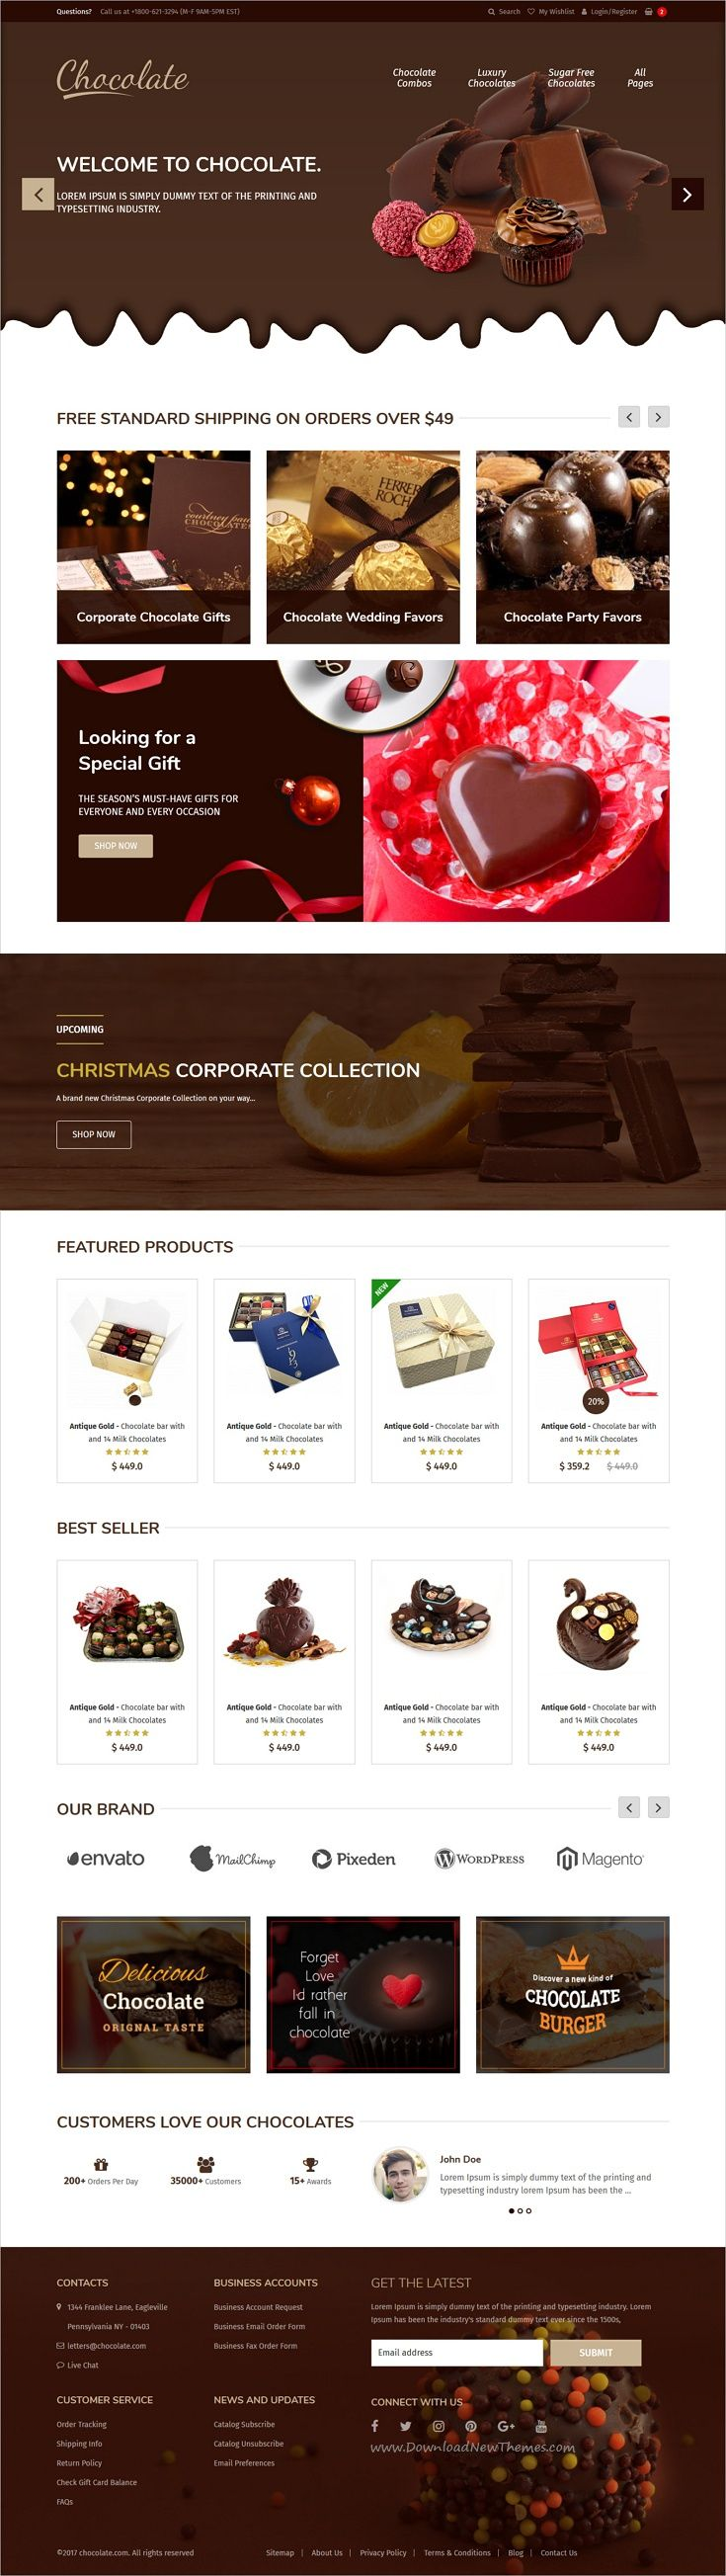 Bootstrap Website Templates Chocolate  Ecommerce Sweets & Cupcakes Bootstrap Template  Cake